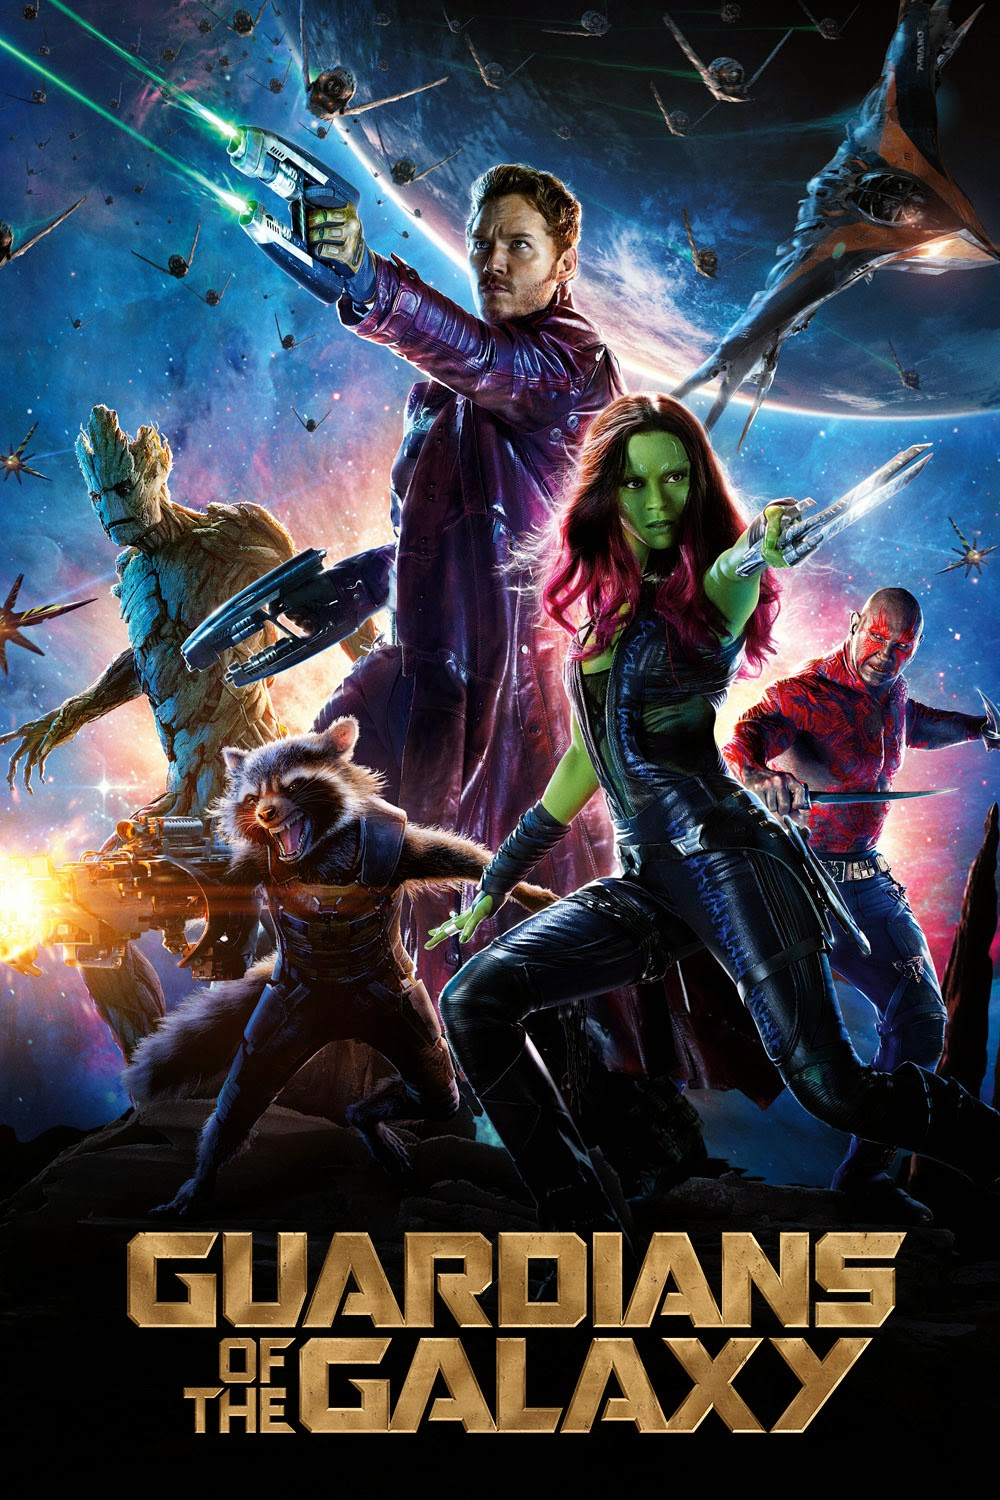 Watch Guardians of the Galaxy Full Movie Streaming Online in HD